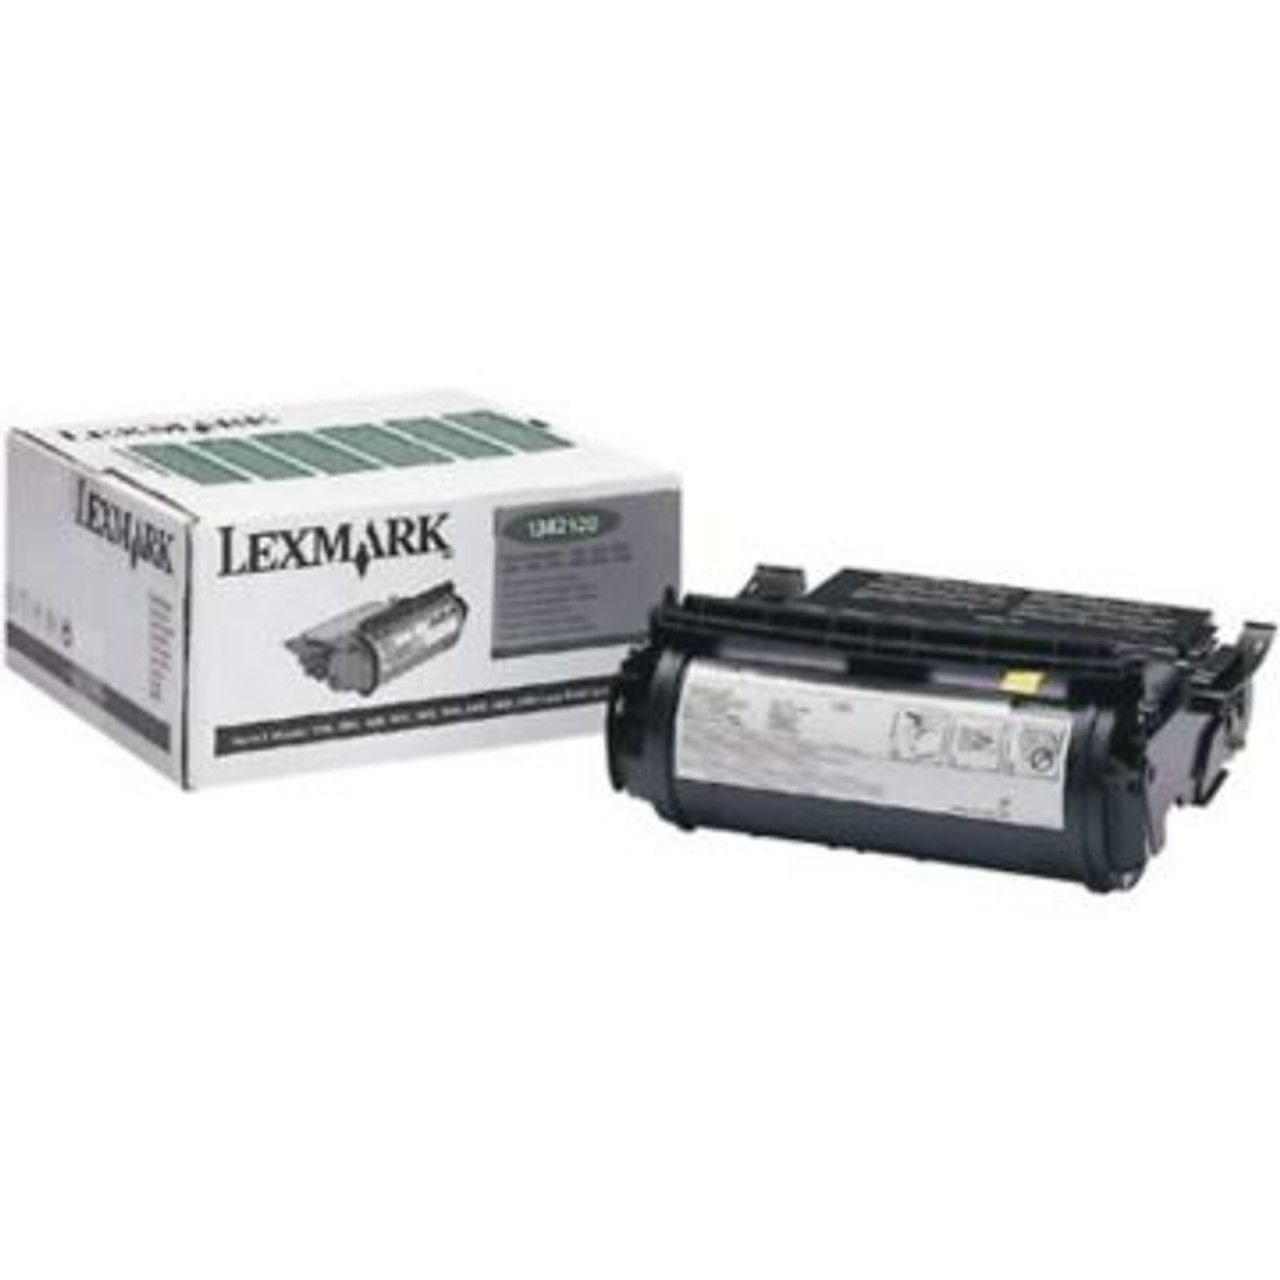 LEXMARK OPTRA S 1620 WINDOWS 7 64BIT DRIVER